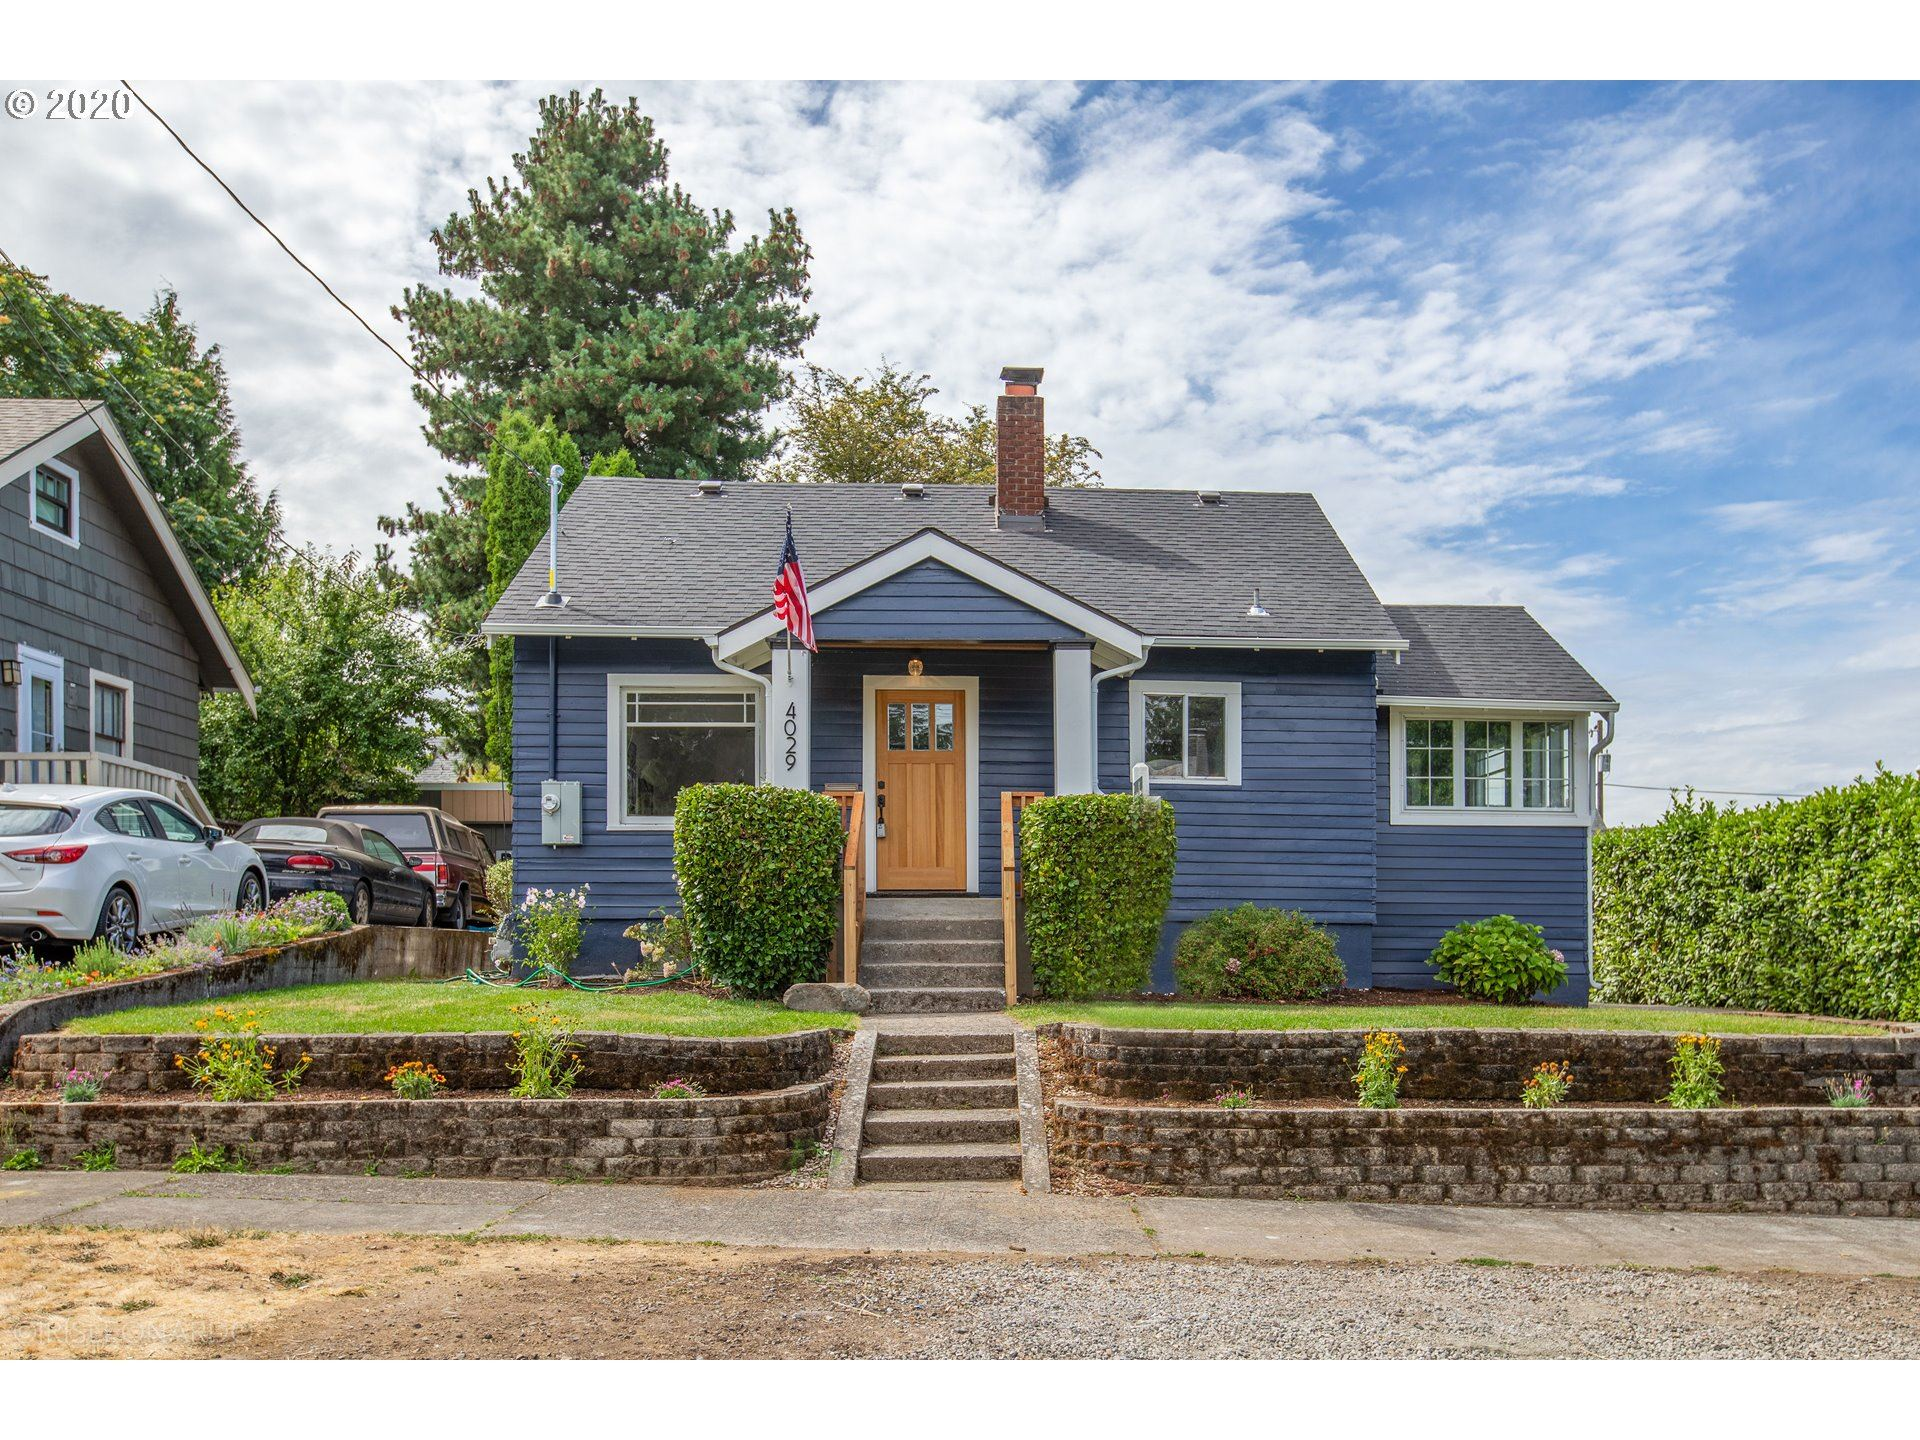 4029 NE 73RD AVE, Portland, OR 97213 - MLS#: 20053948